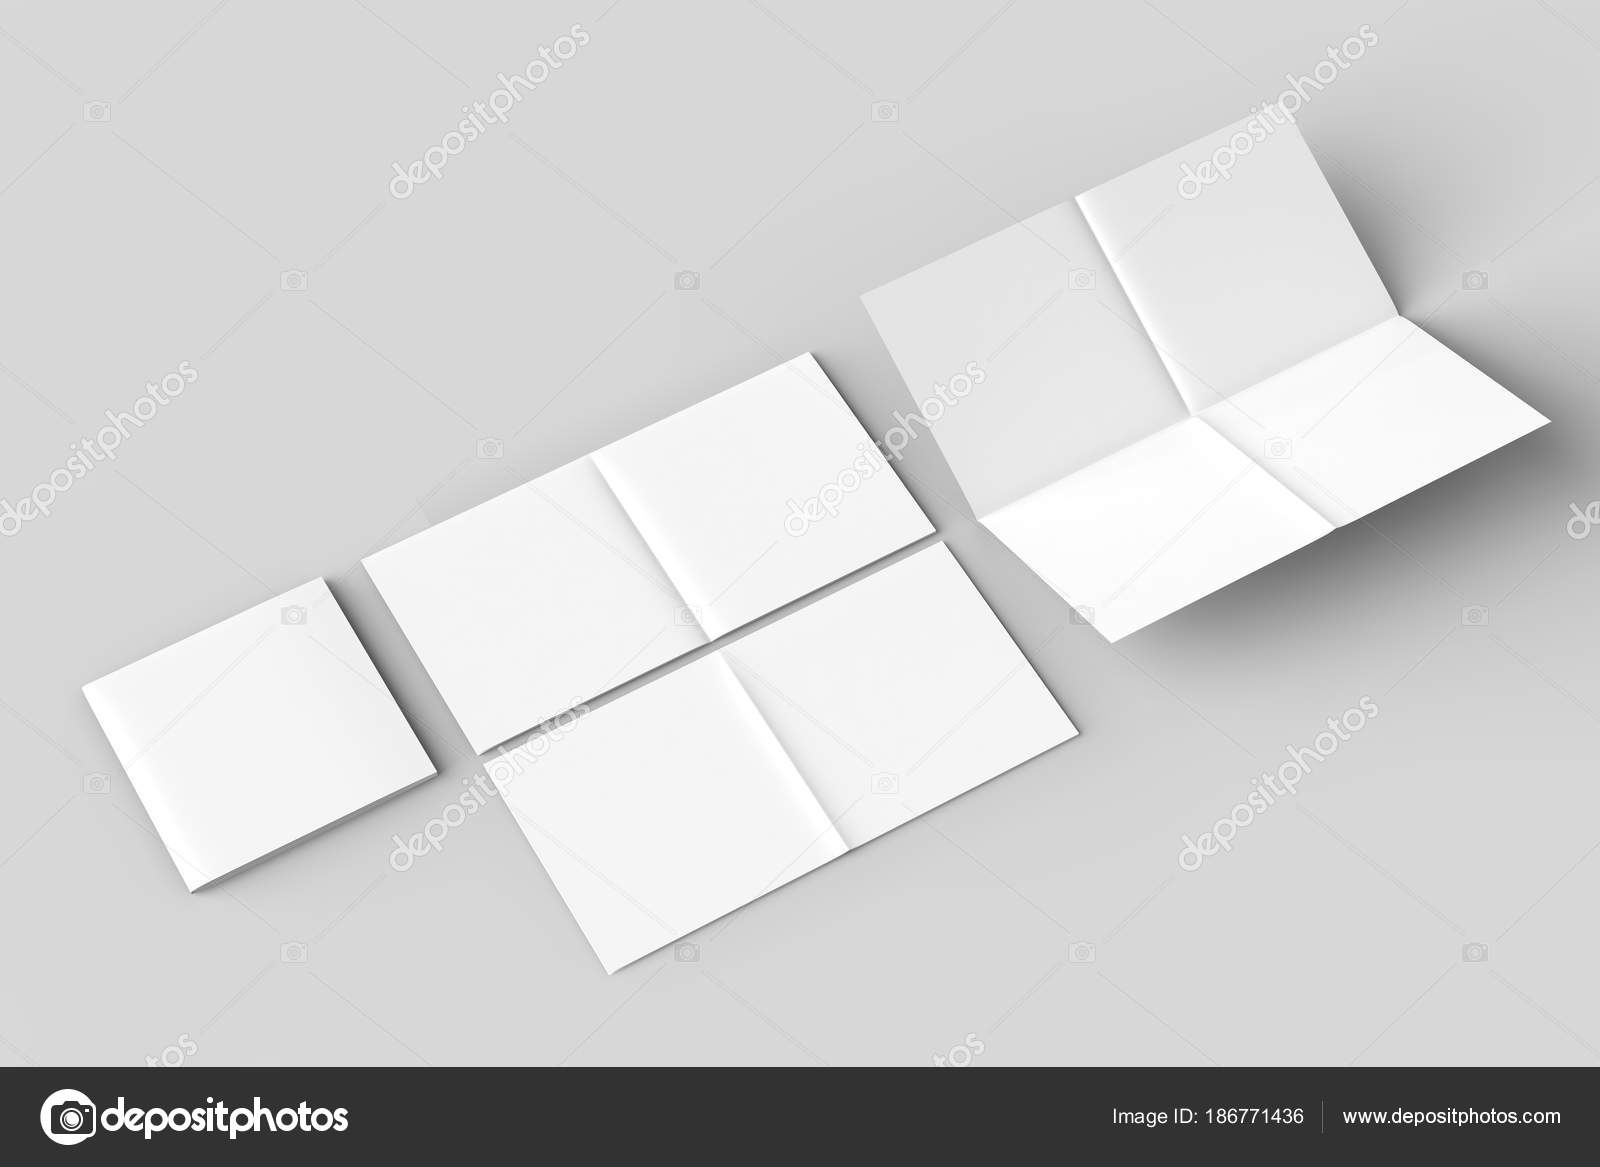 8 page leaflet french fold square brochure mock up isolated on